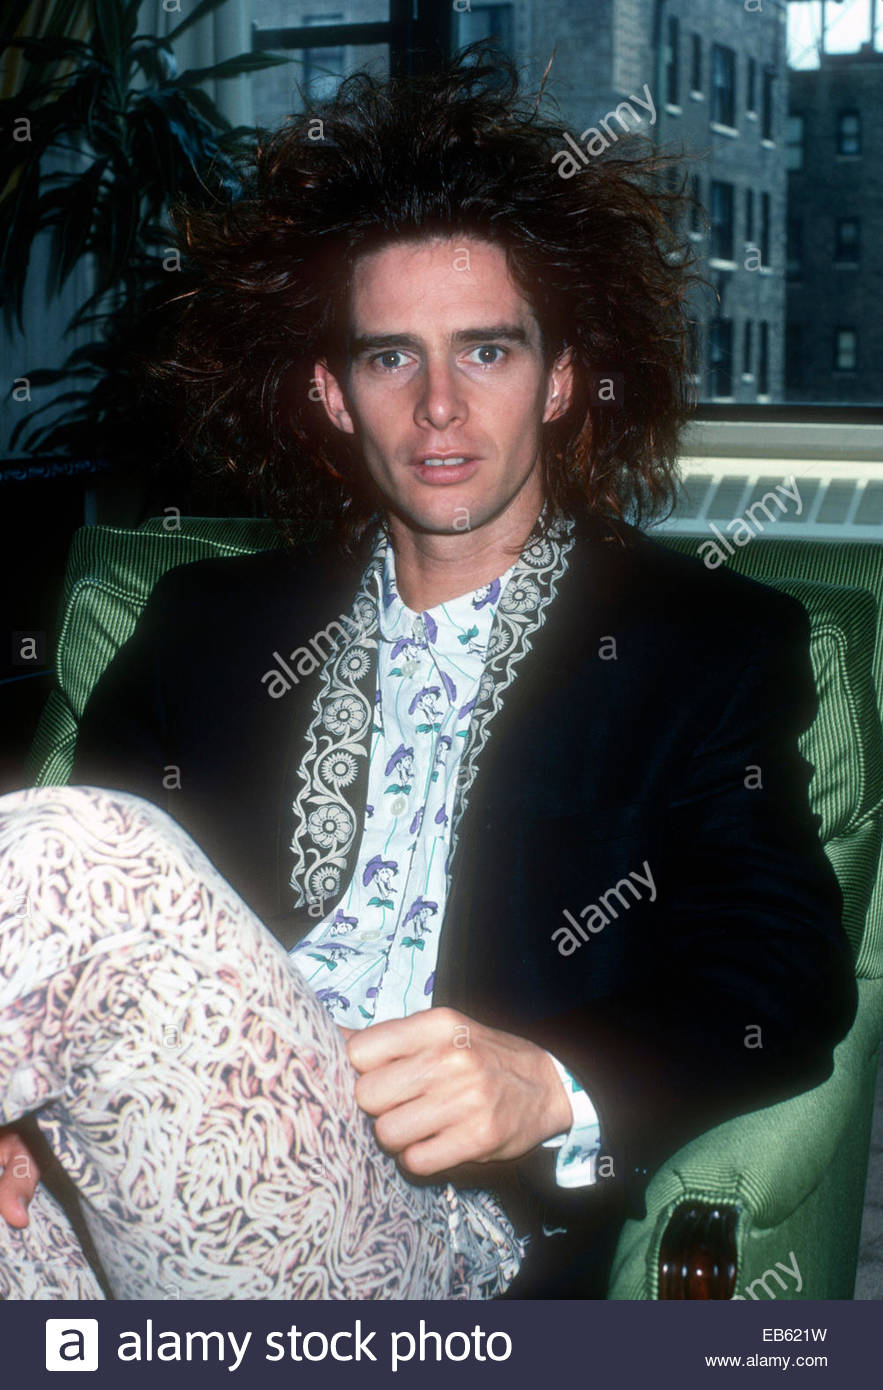 yahoo serious now